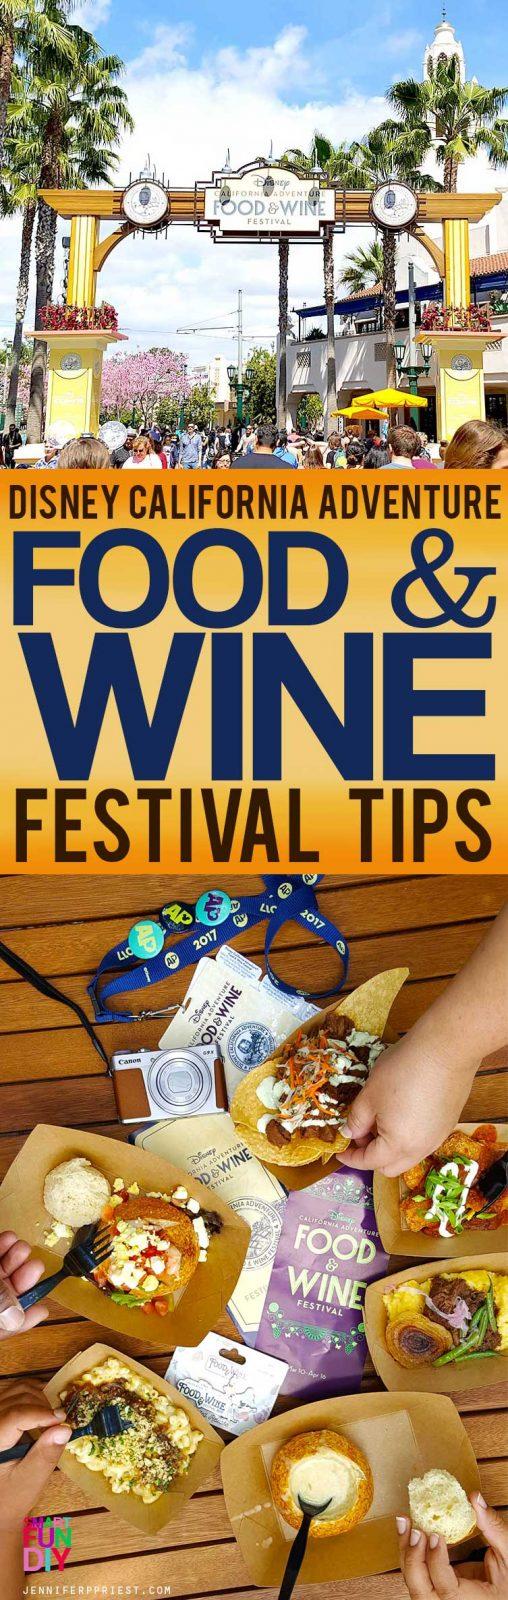 Disney California Adventure Food & Wine Festival - Review, tips for Annual Passholders AND day trippers, PLUS a look at this year's food offerings.